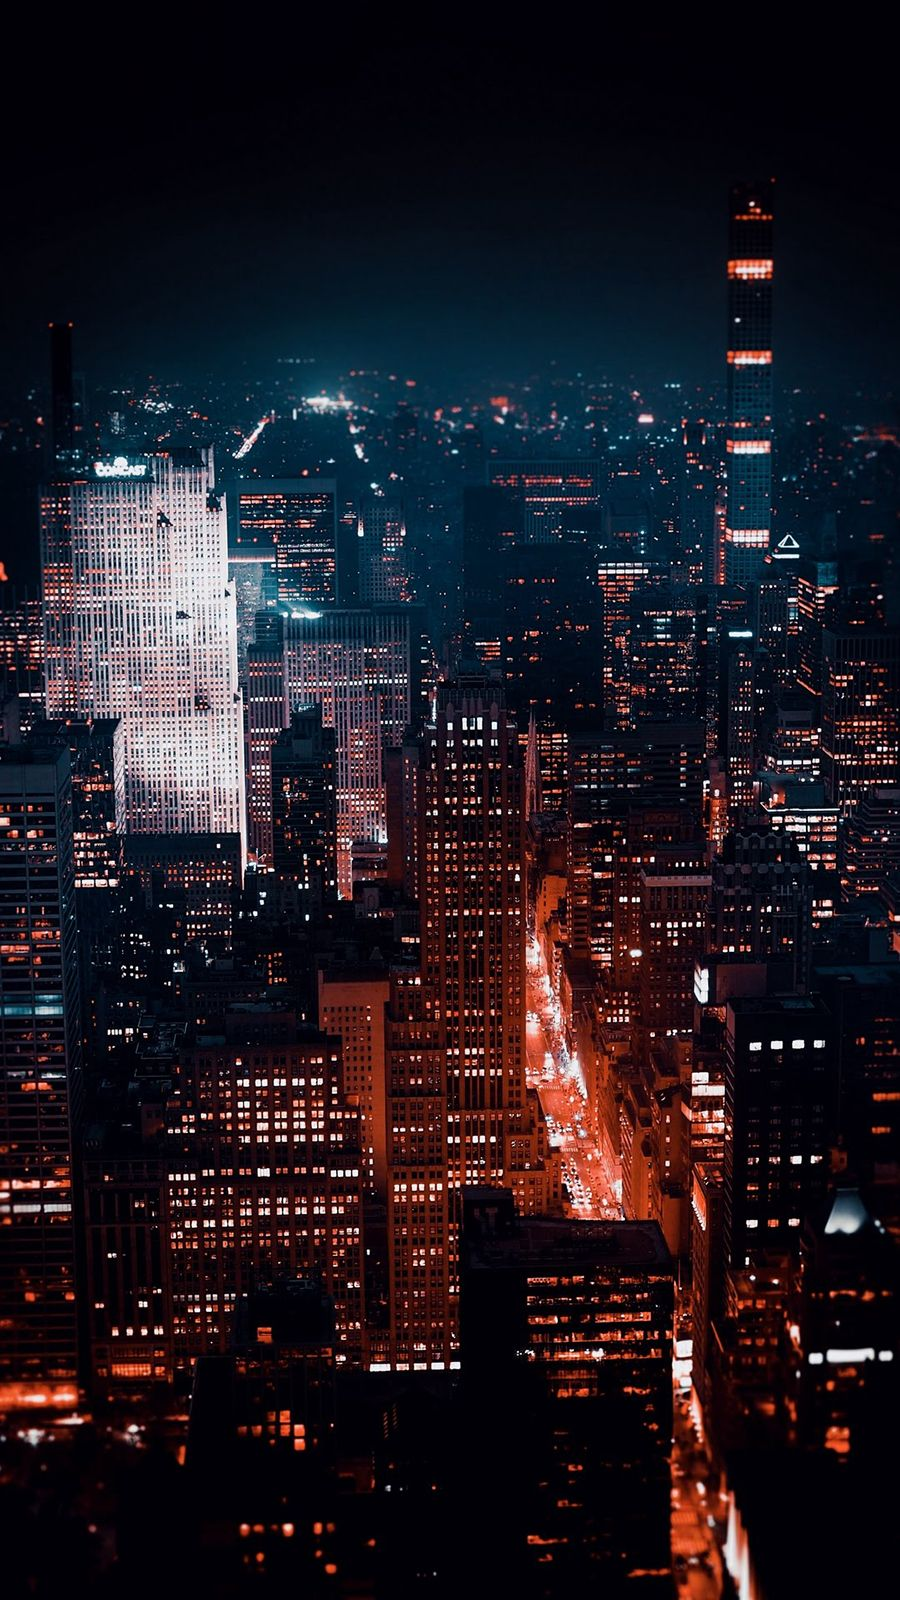 Samsung Galaxy A01 Wallpapers Samsung Wallpapers Free Download In 2020 Samsung Wallpaper City Aesthetic Night City